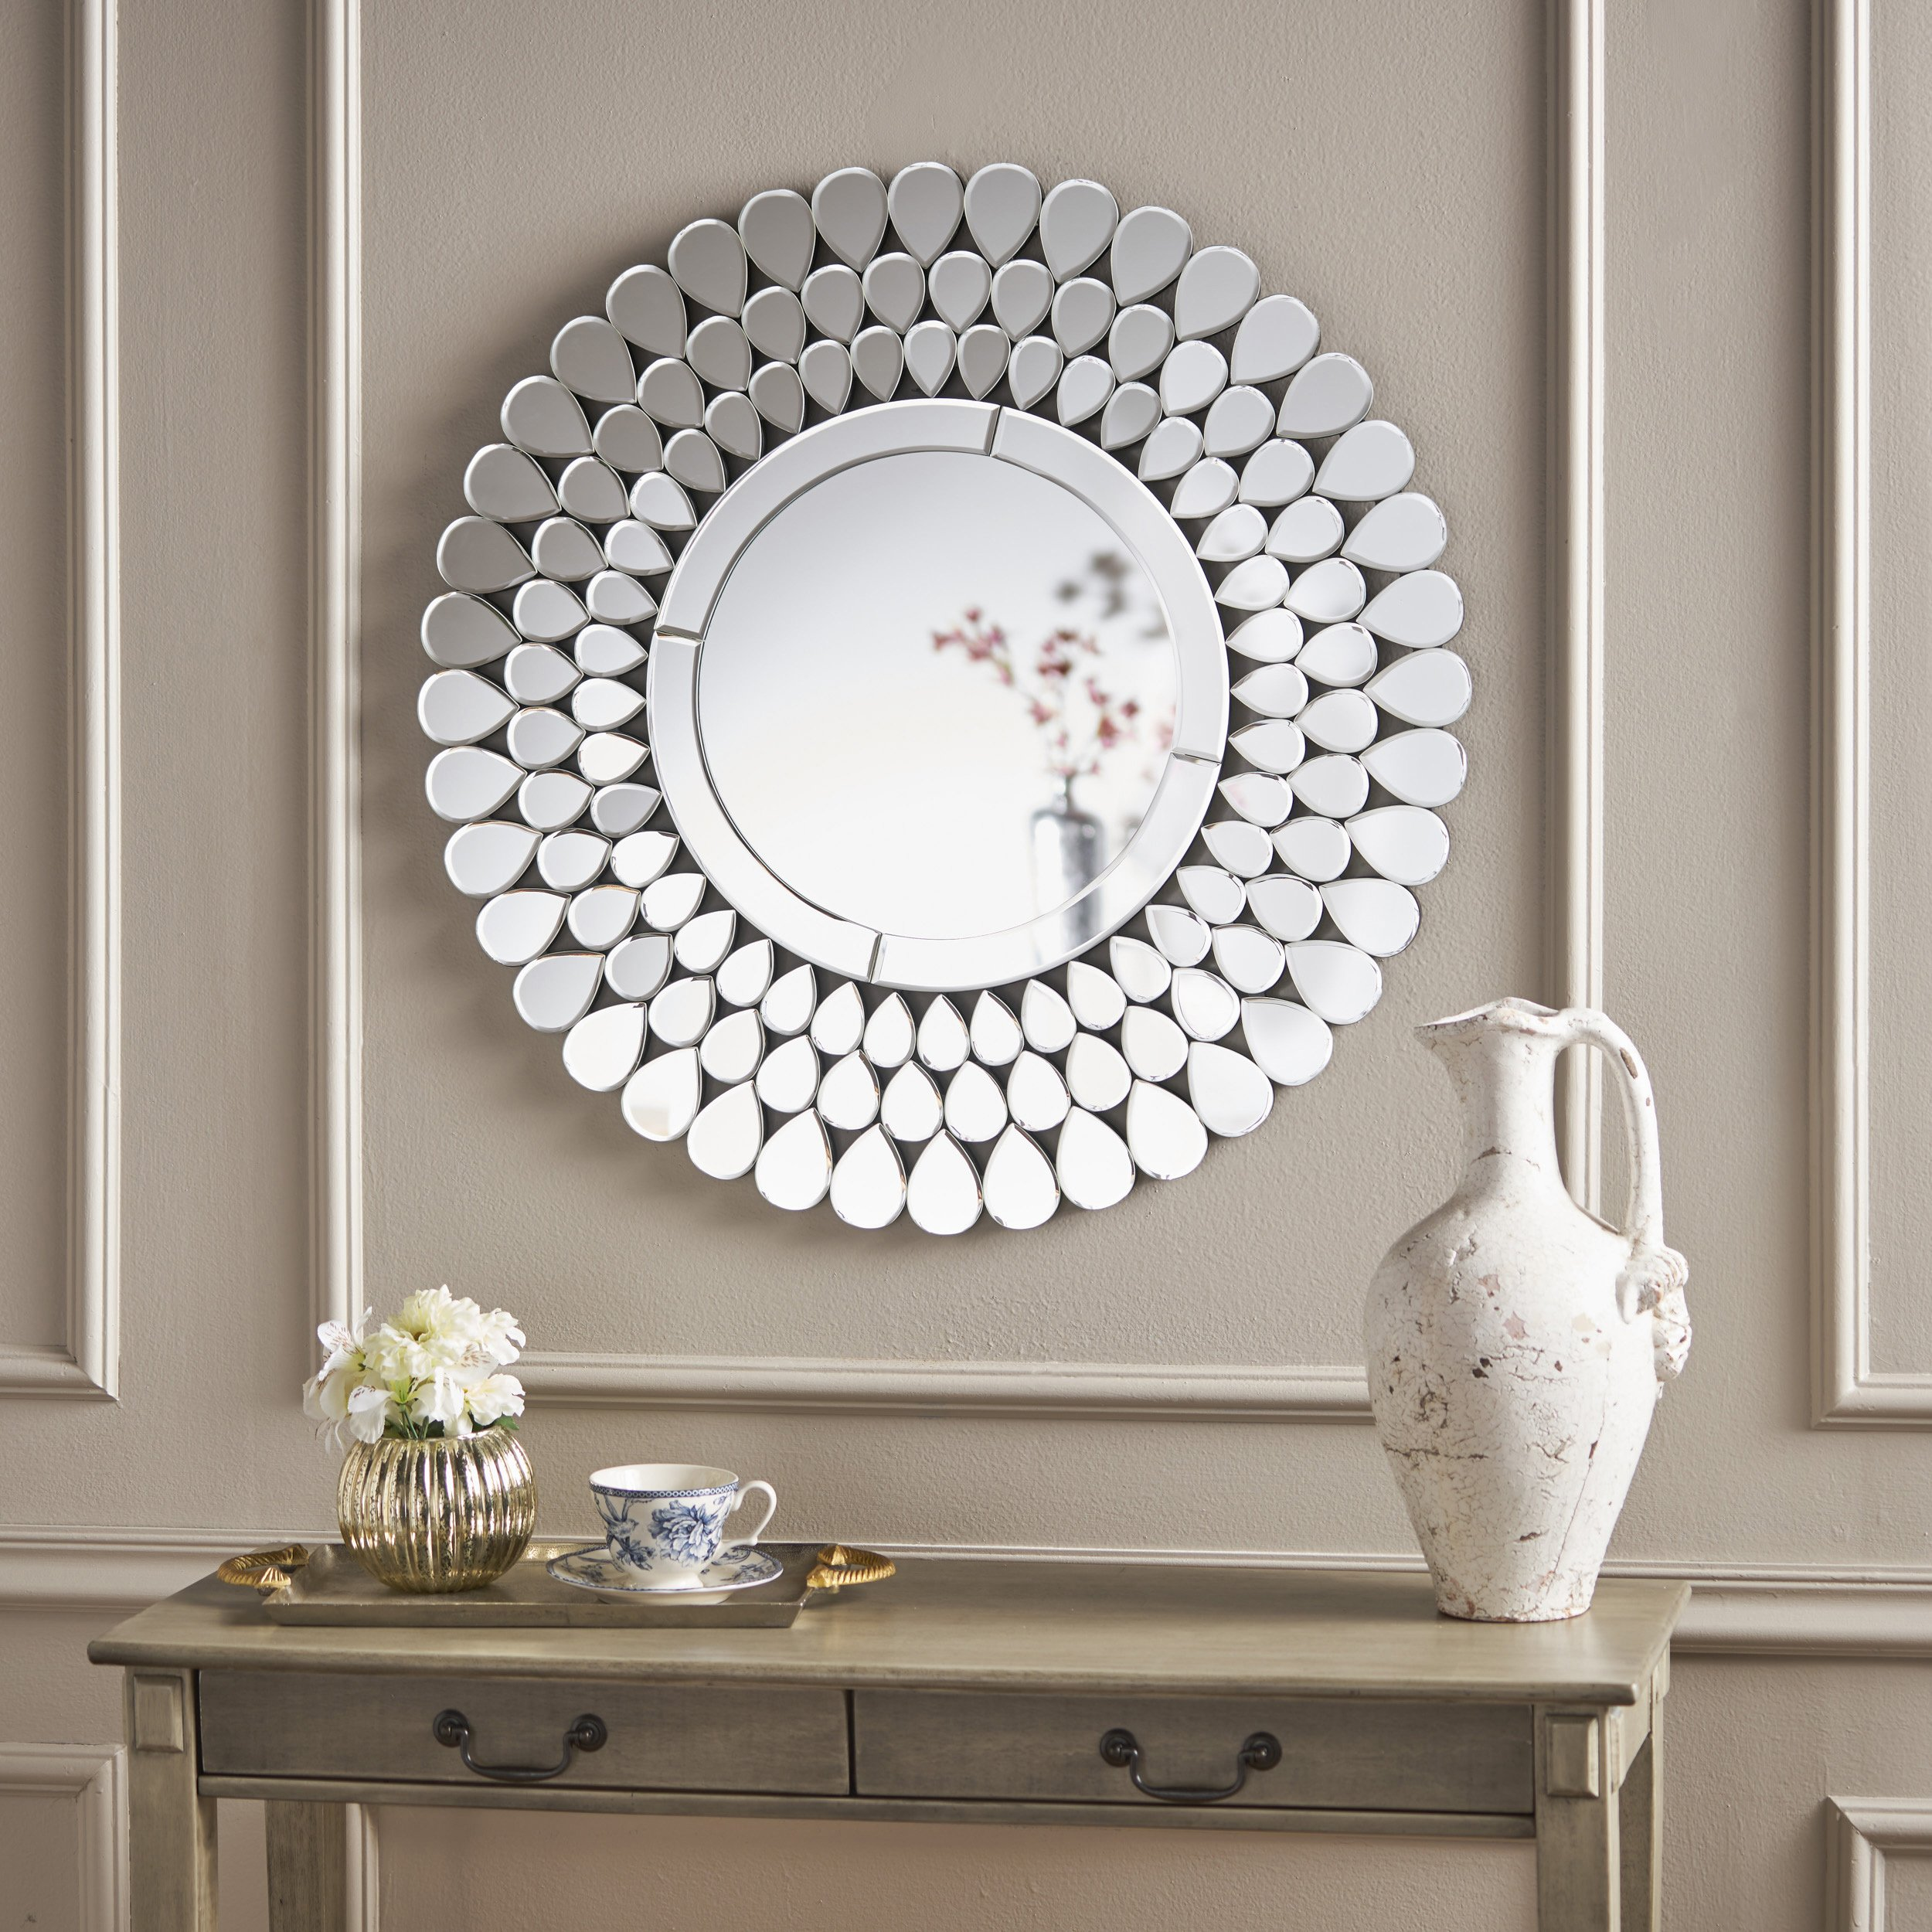 Christopher Knight Home 301518 Armguard Flower Wall Mirror, Clear